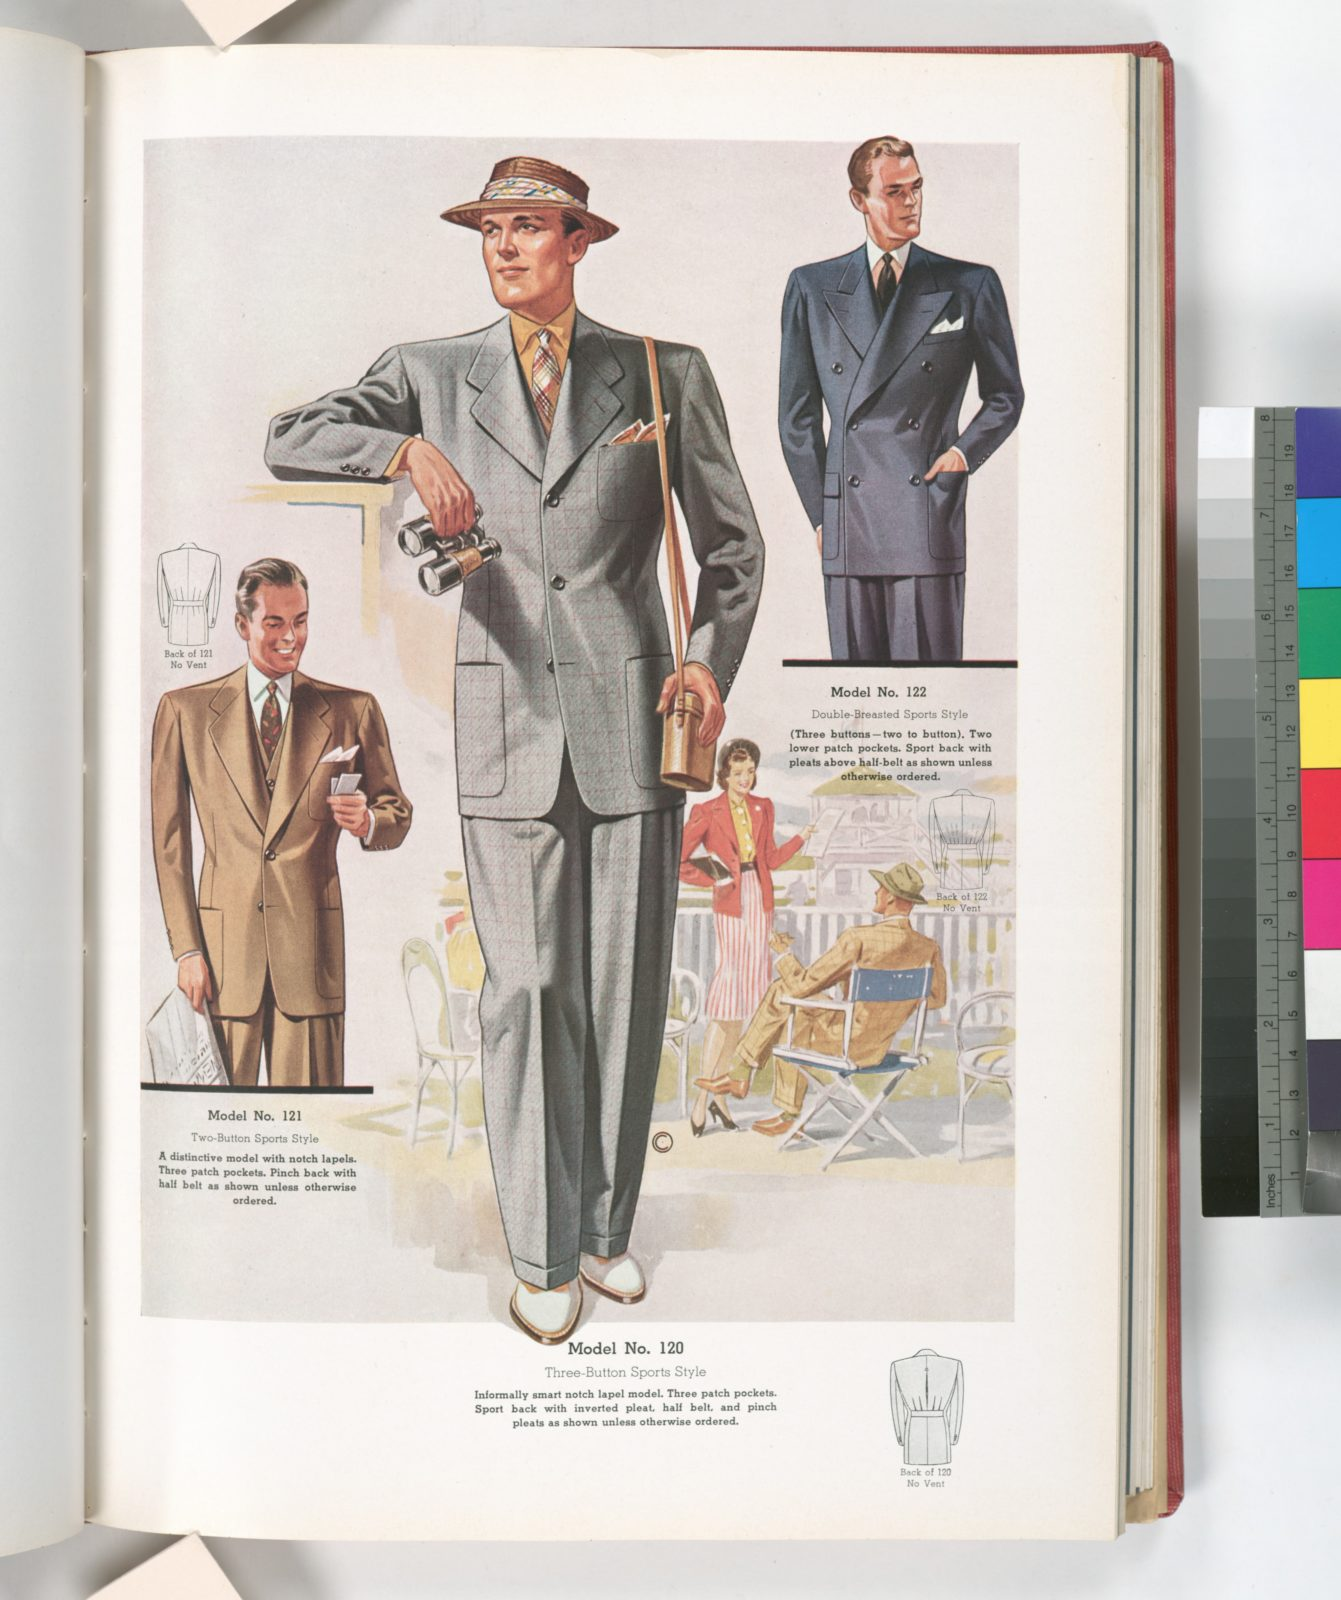 Model No. 120. Three-button sports style - notch lapel model with three patch pockets, sport back with inverted pleat, half belt, and pinch pleats; Model No. 121. Two-button sports style; Model. No. 122. Double-breasted sports style.